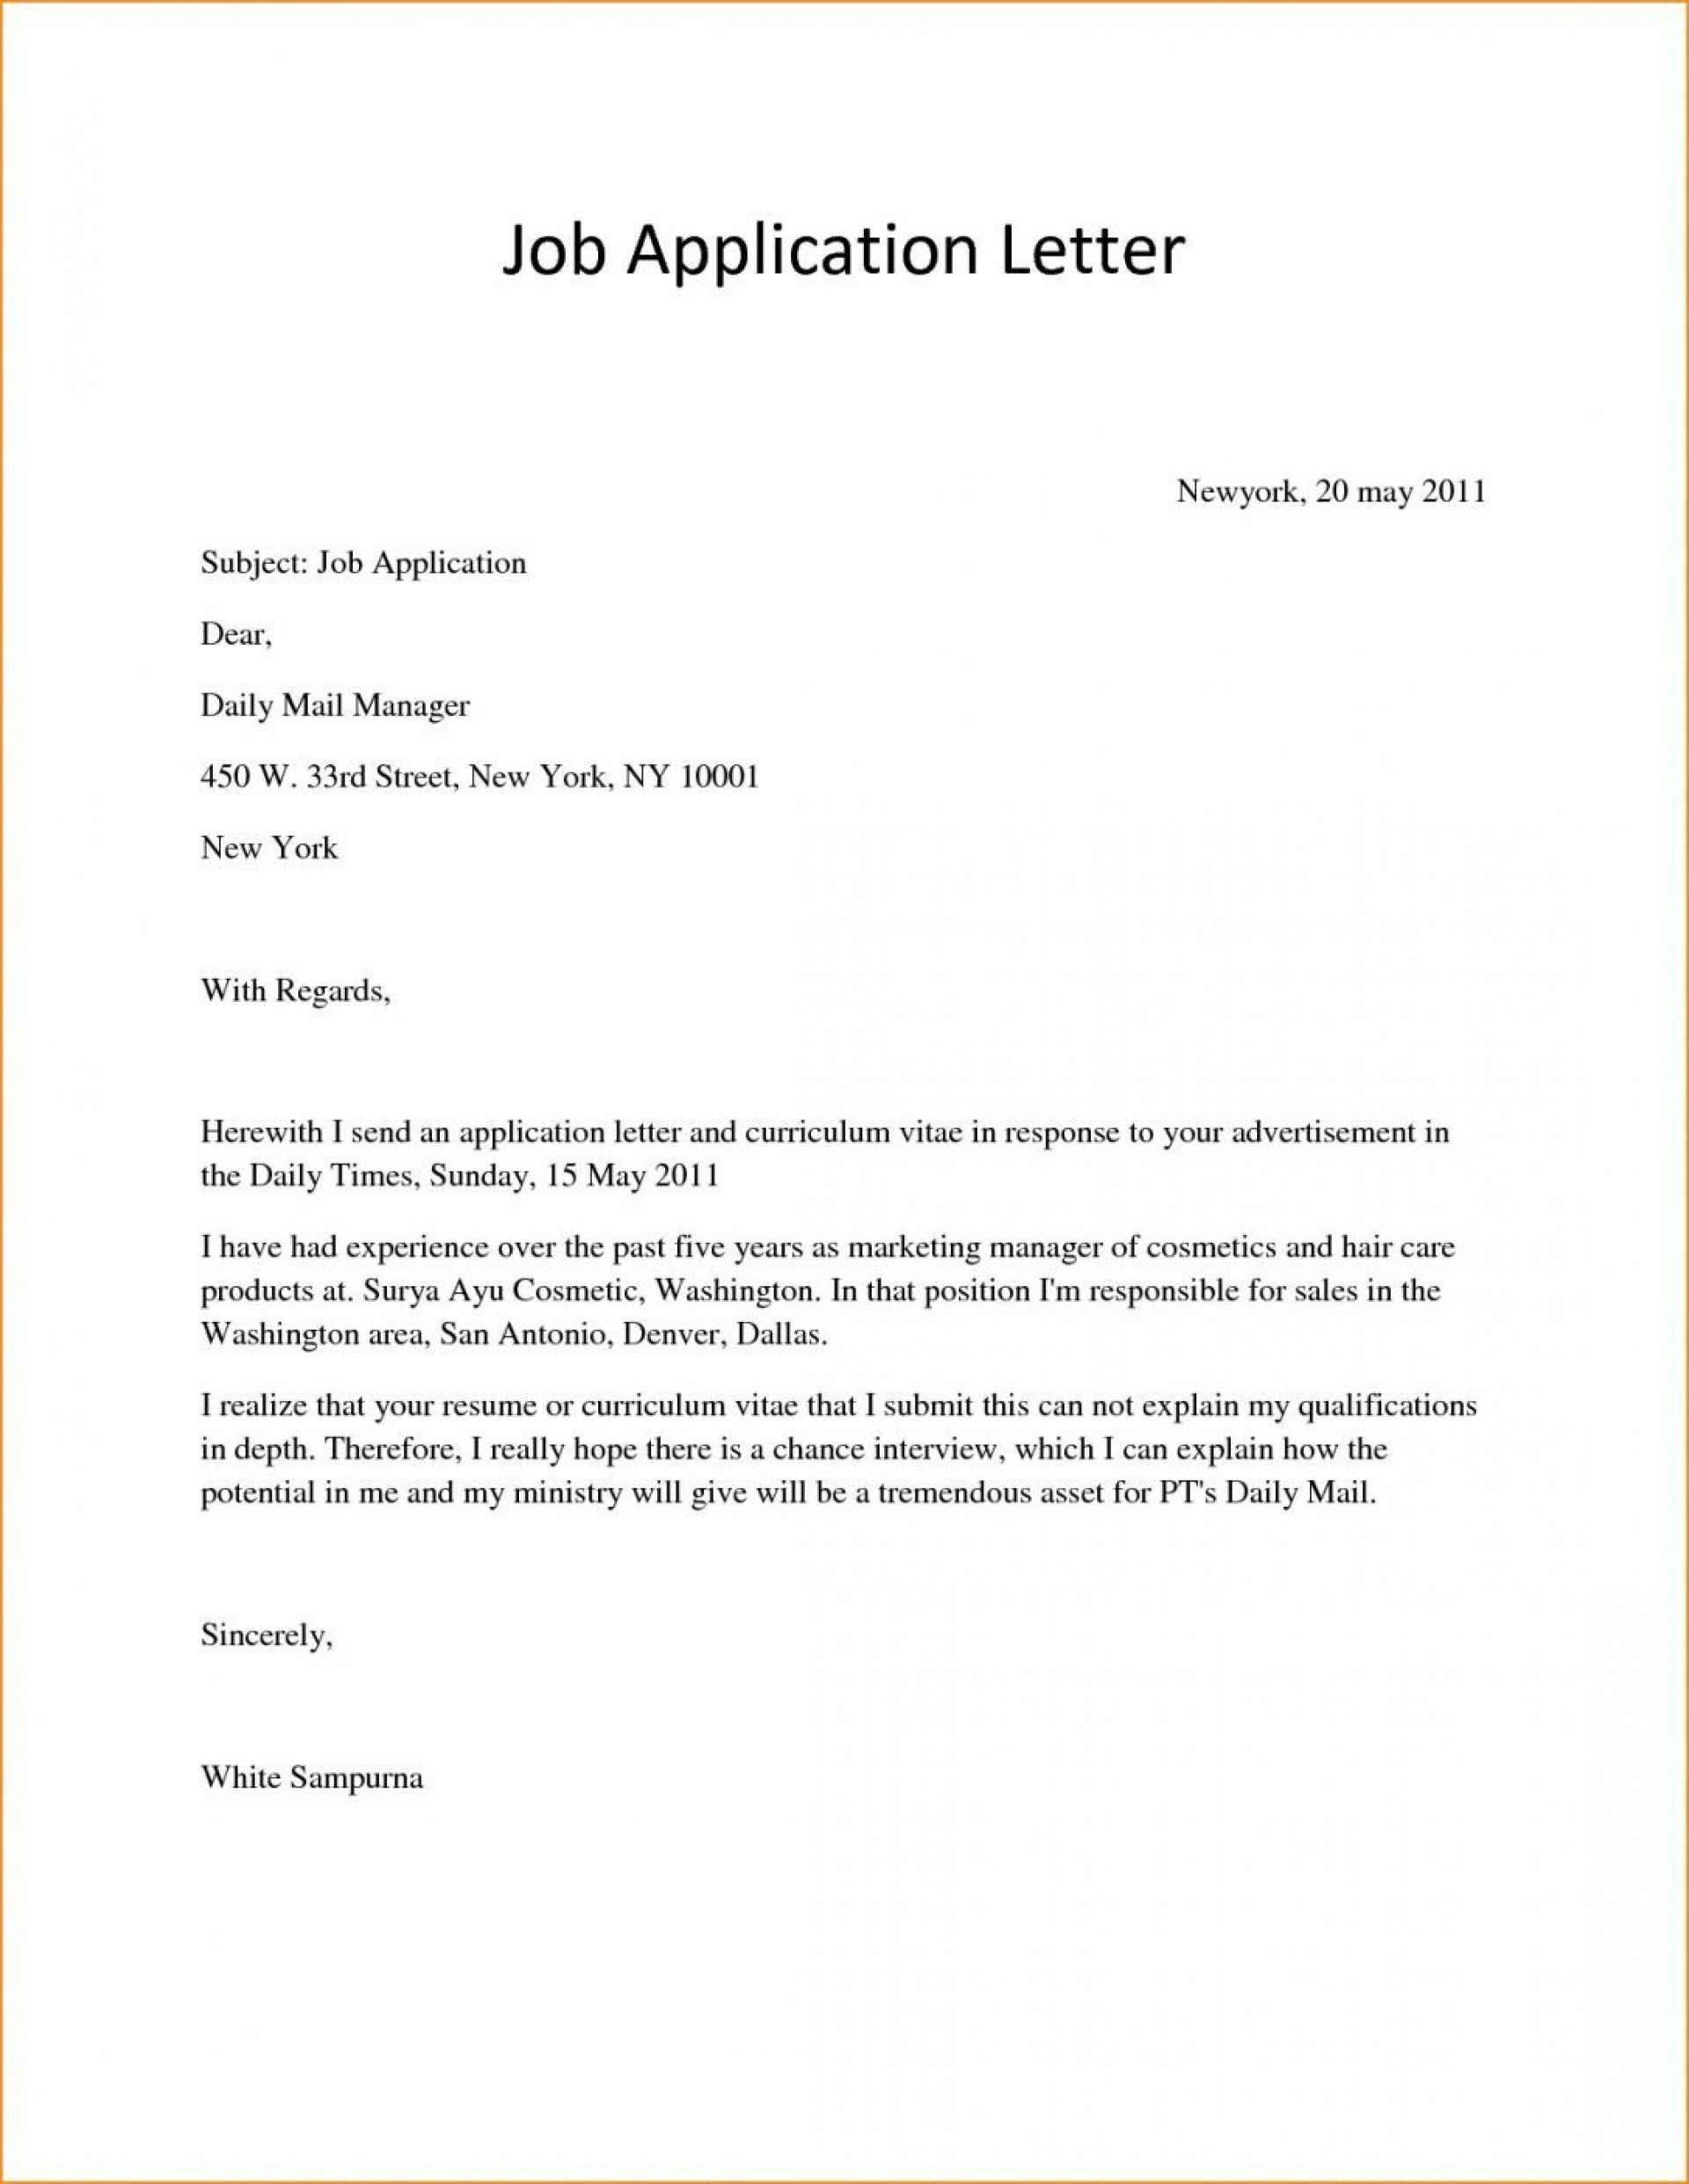 006 Awful Basic Covering Letter Template Photo  Simple Application Word Example Of Job Cover1920